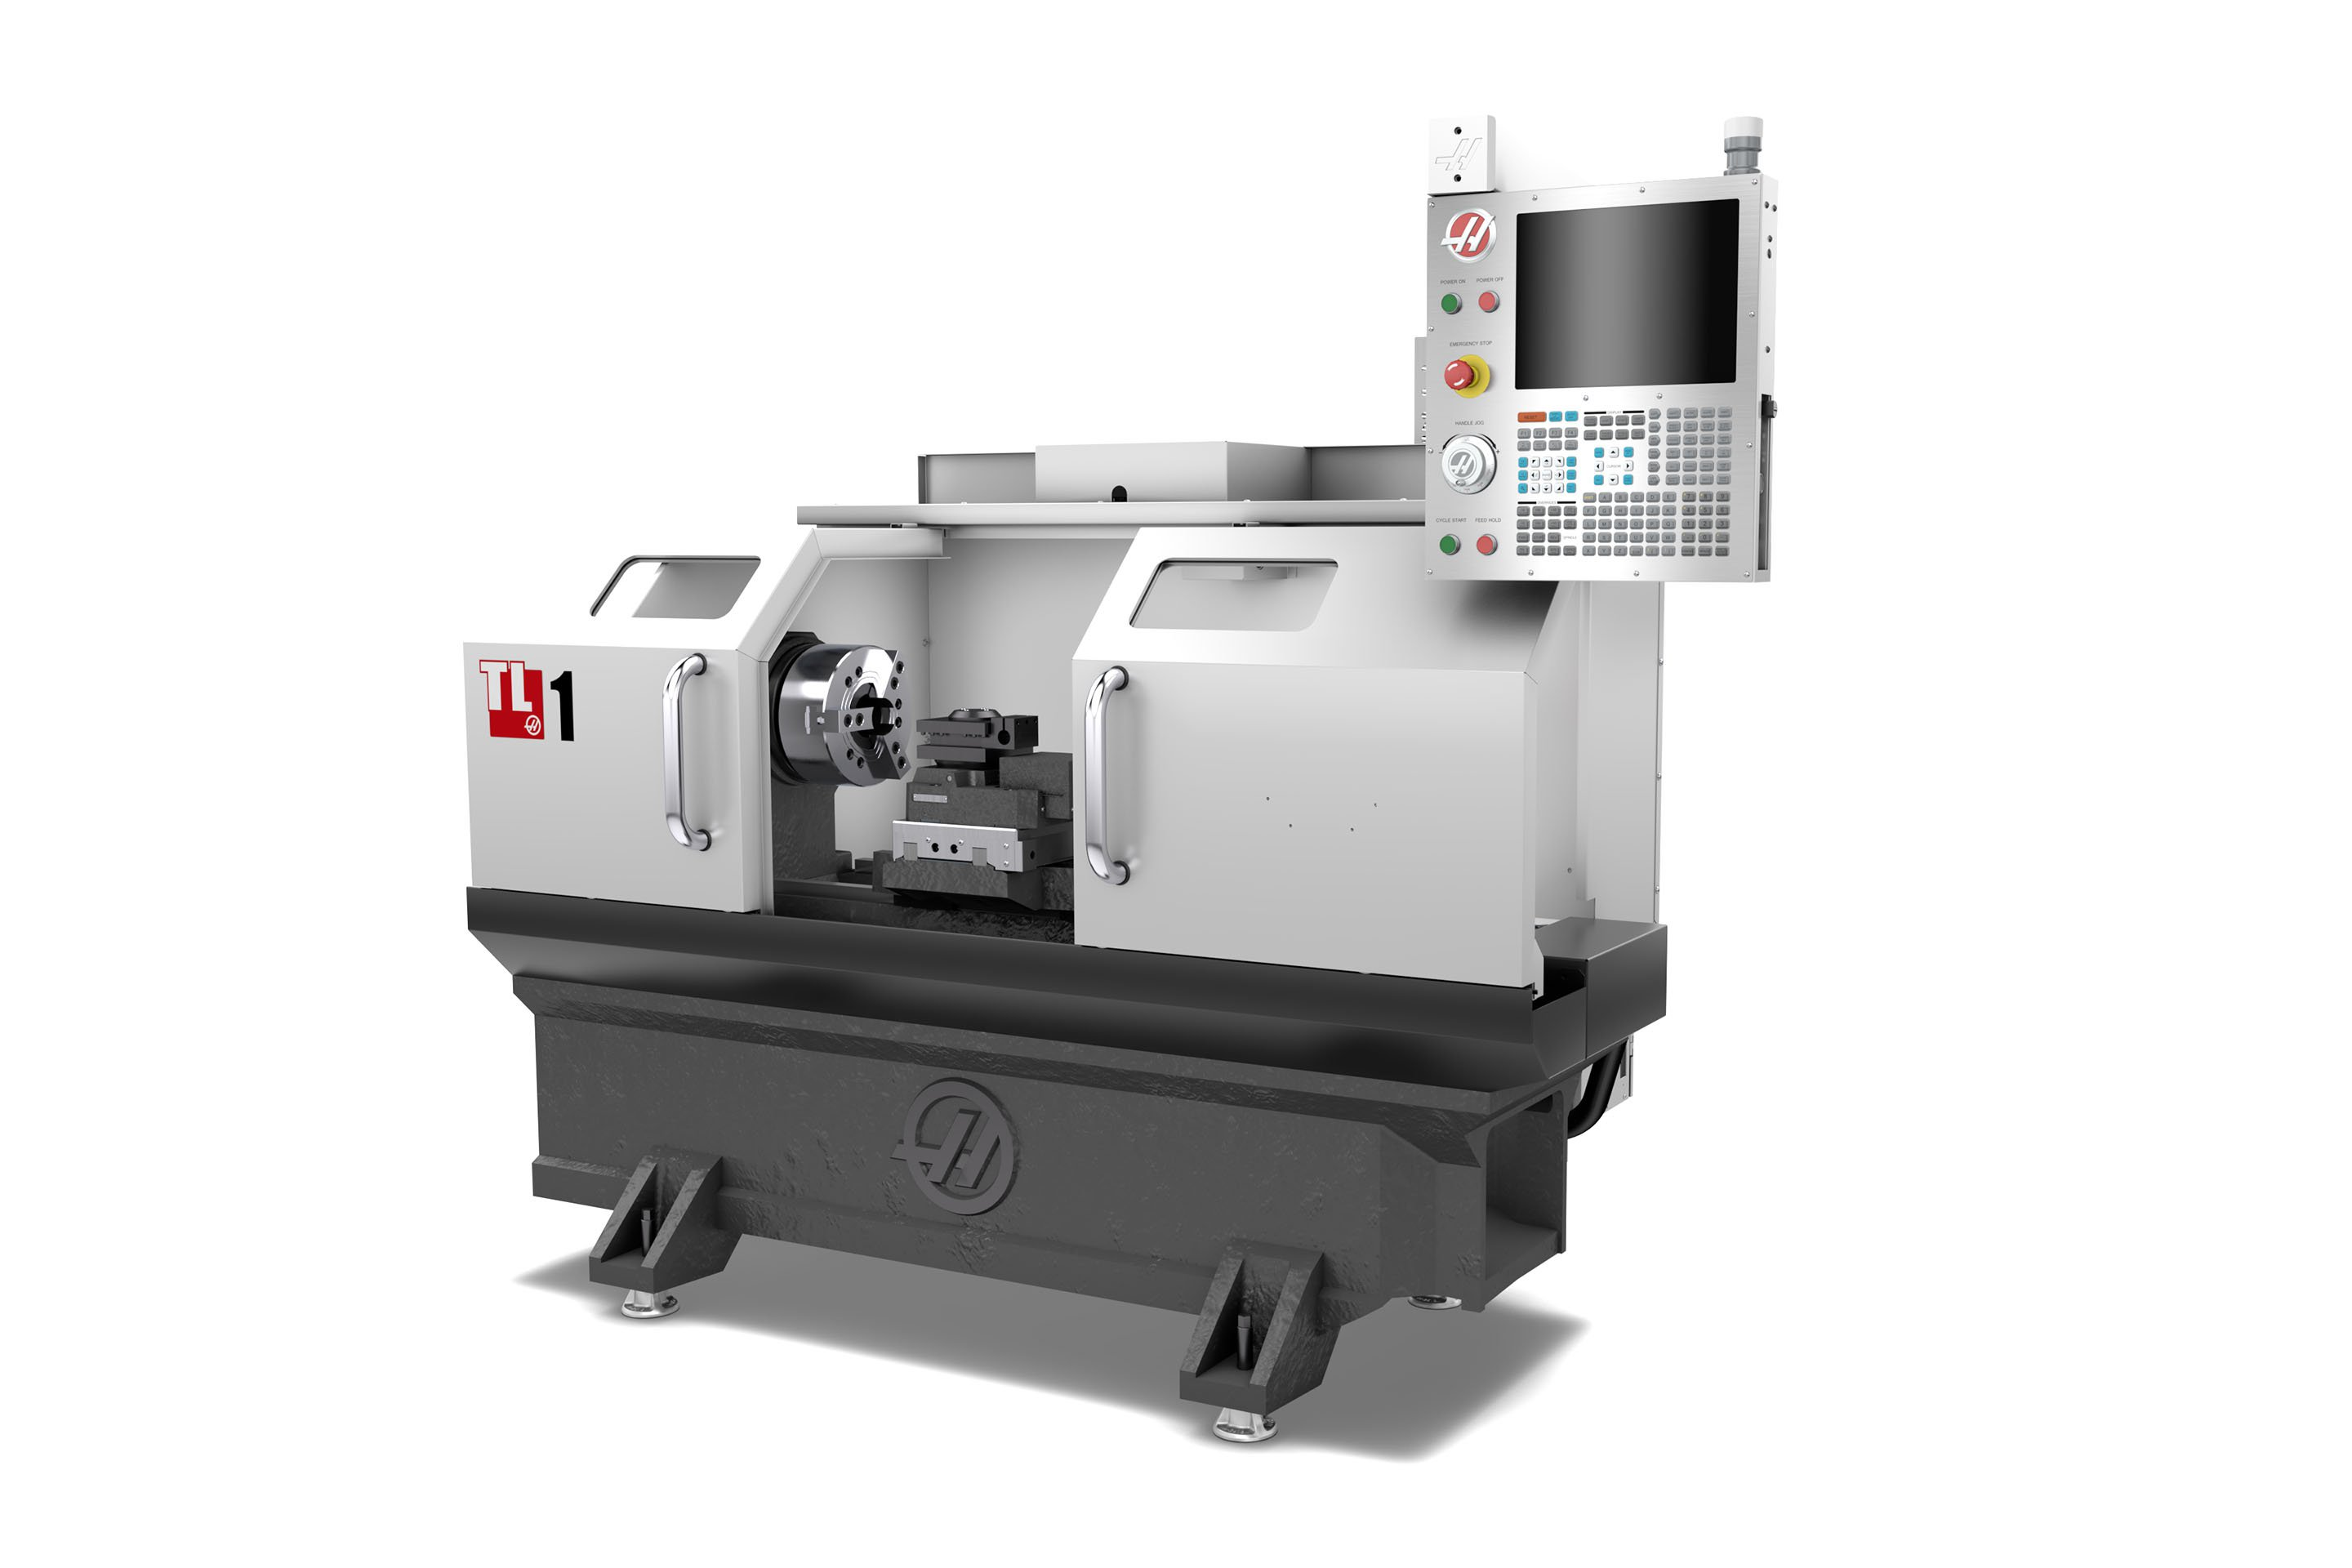 Tl-1 haas automation uk.